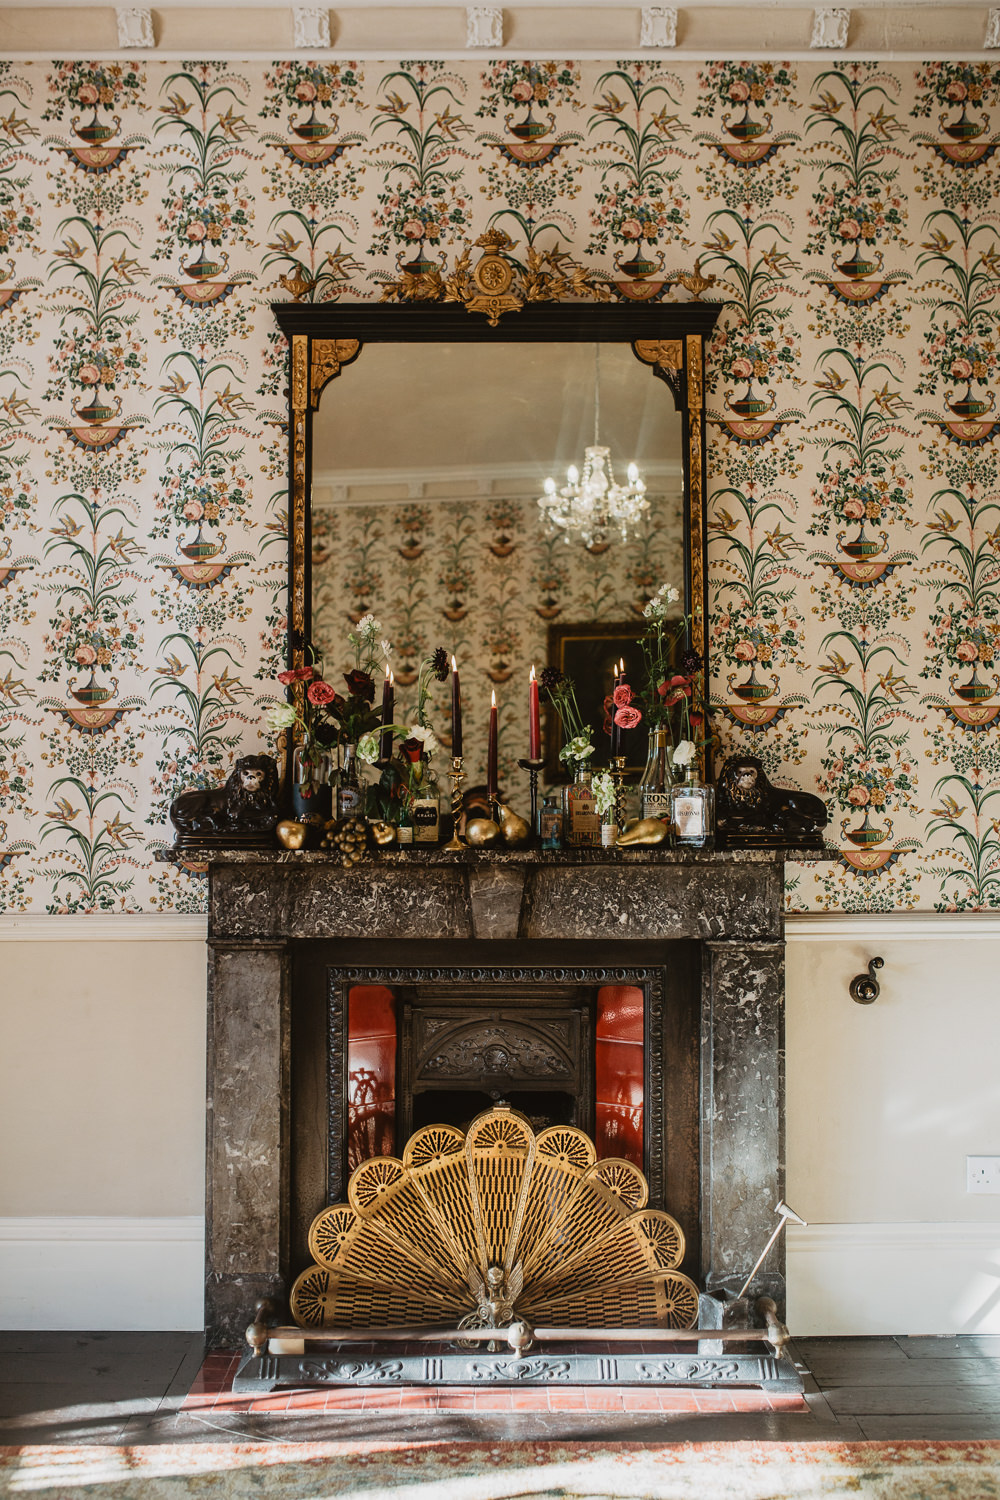 Fireplace Mantle Piece Flowers Bottles Candles Decor Edwardian Wedding Ideas Camilla Andrea Photography